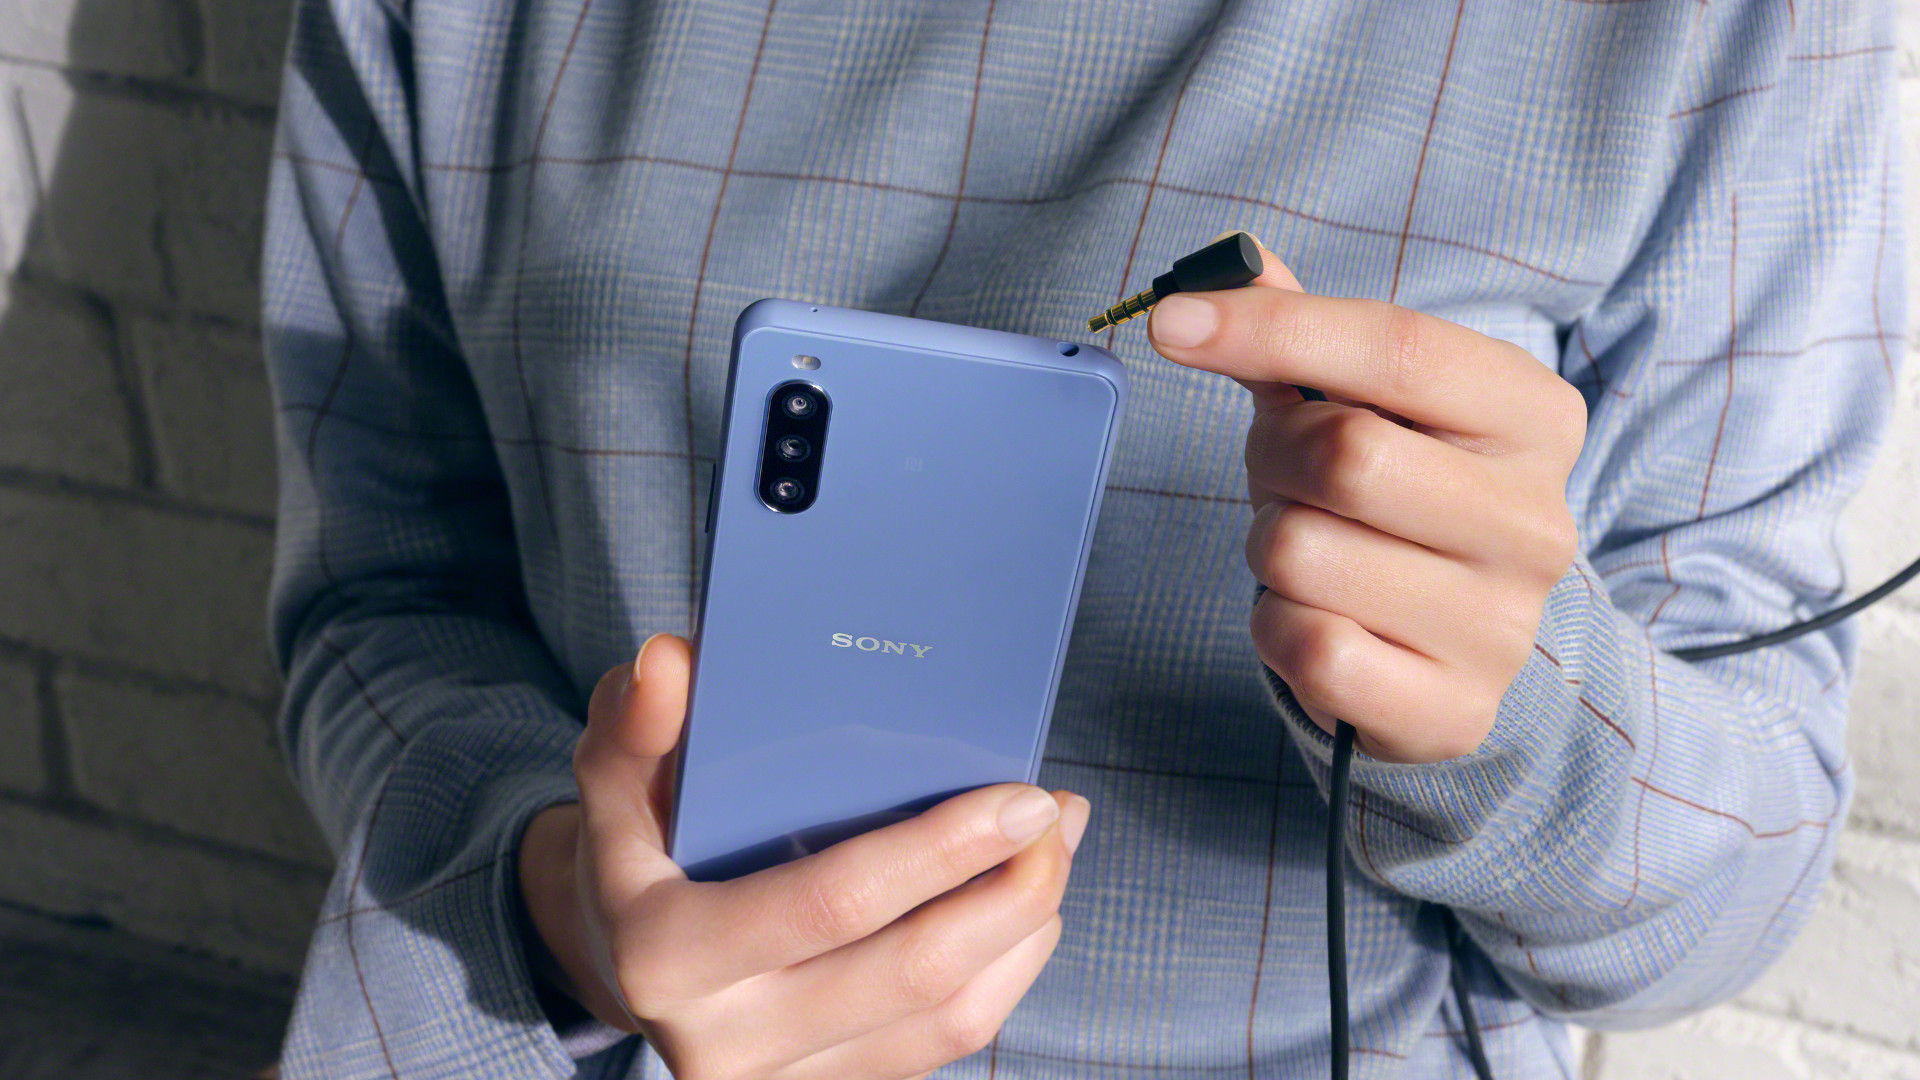 Sony Xperia 10 III official resized